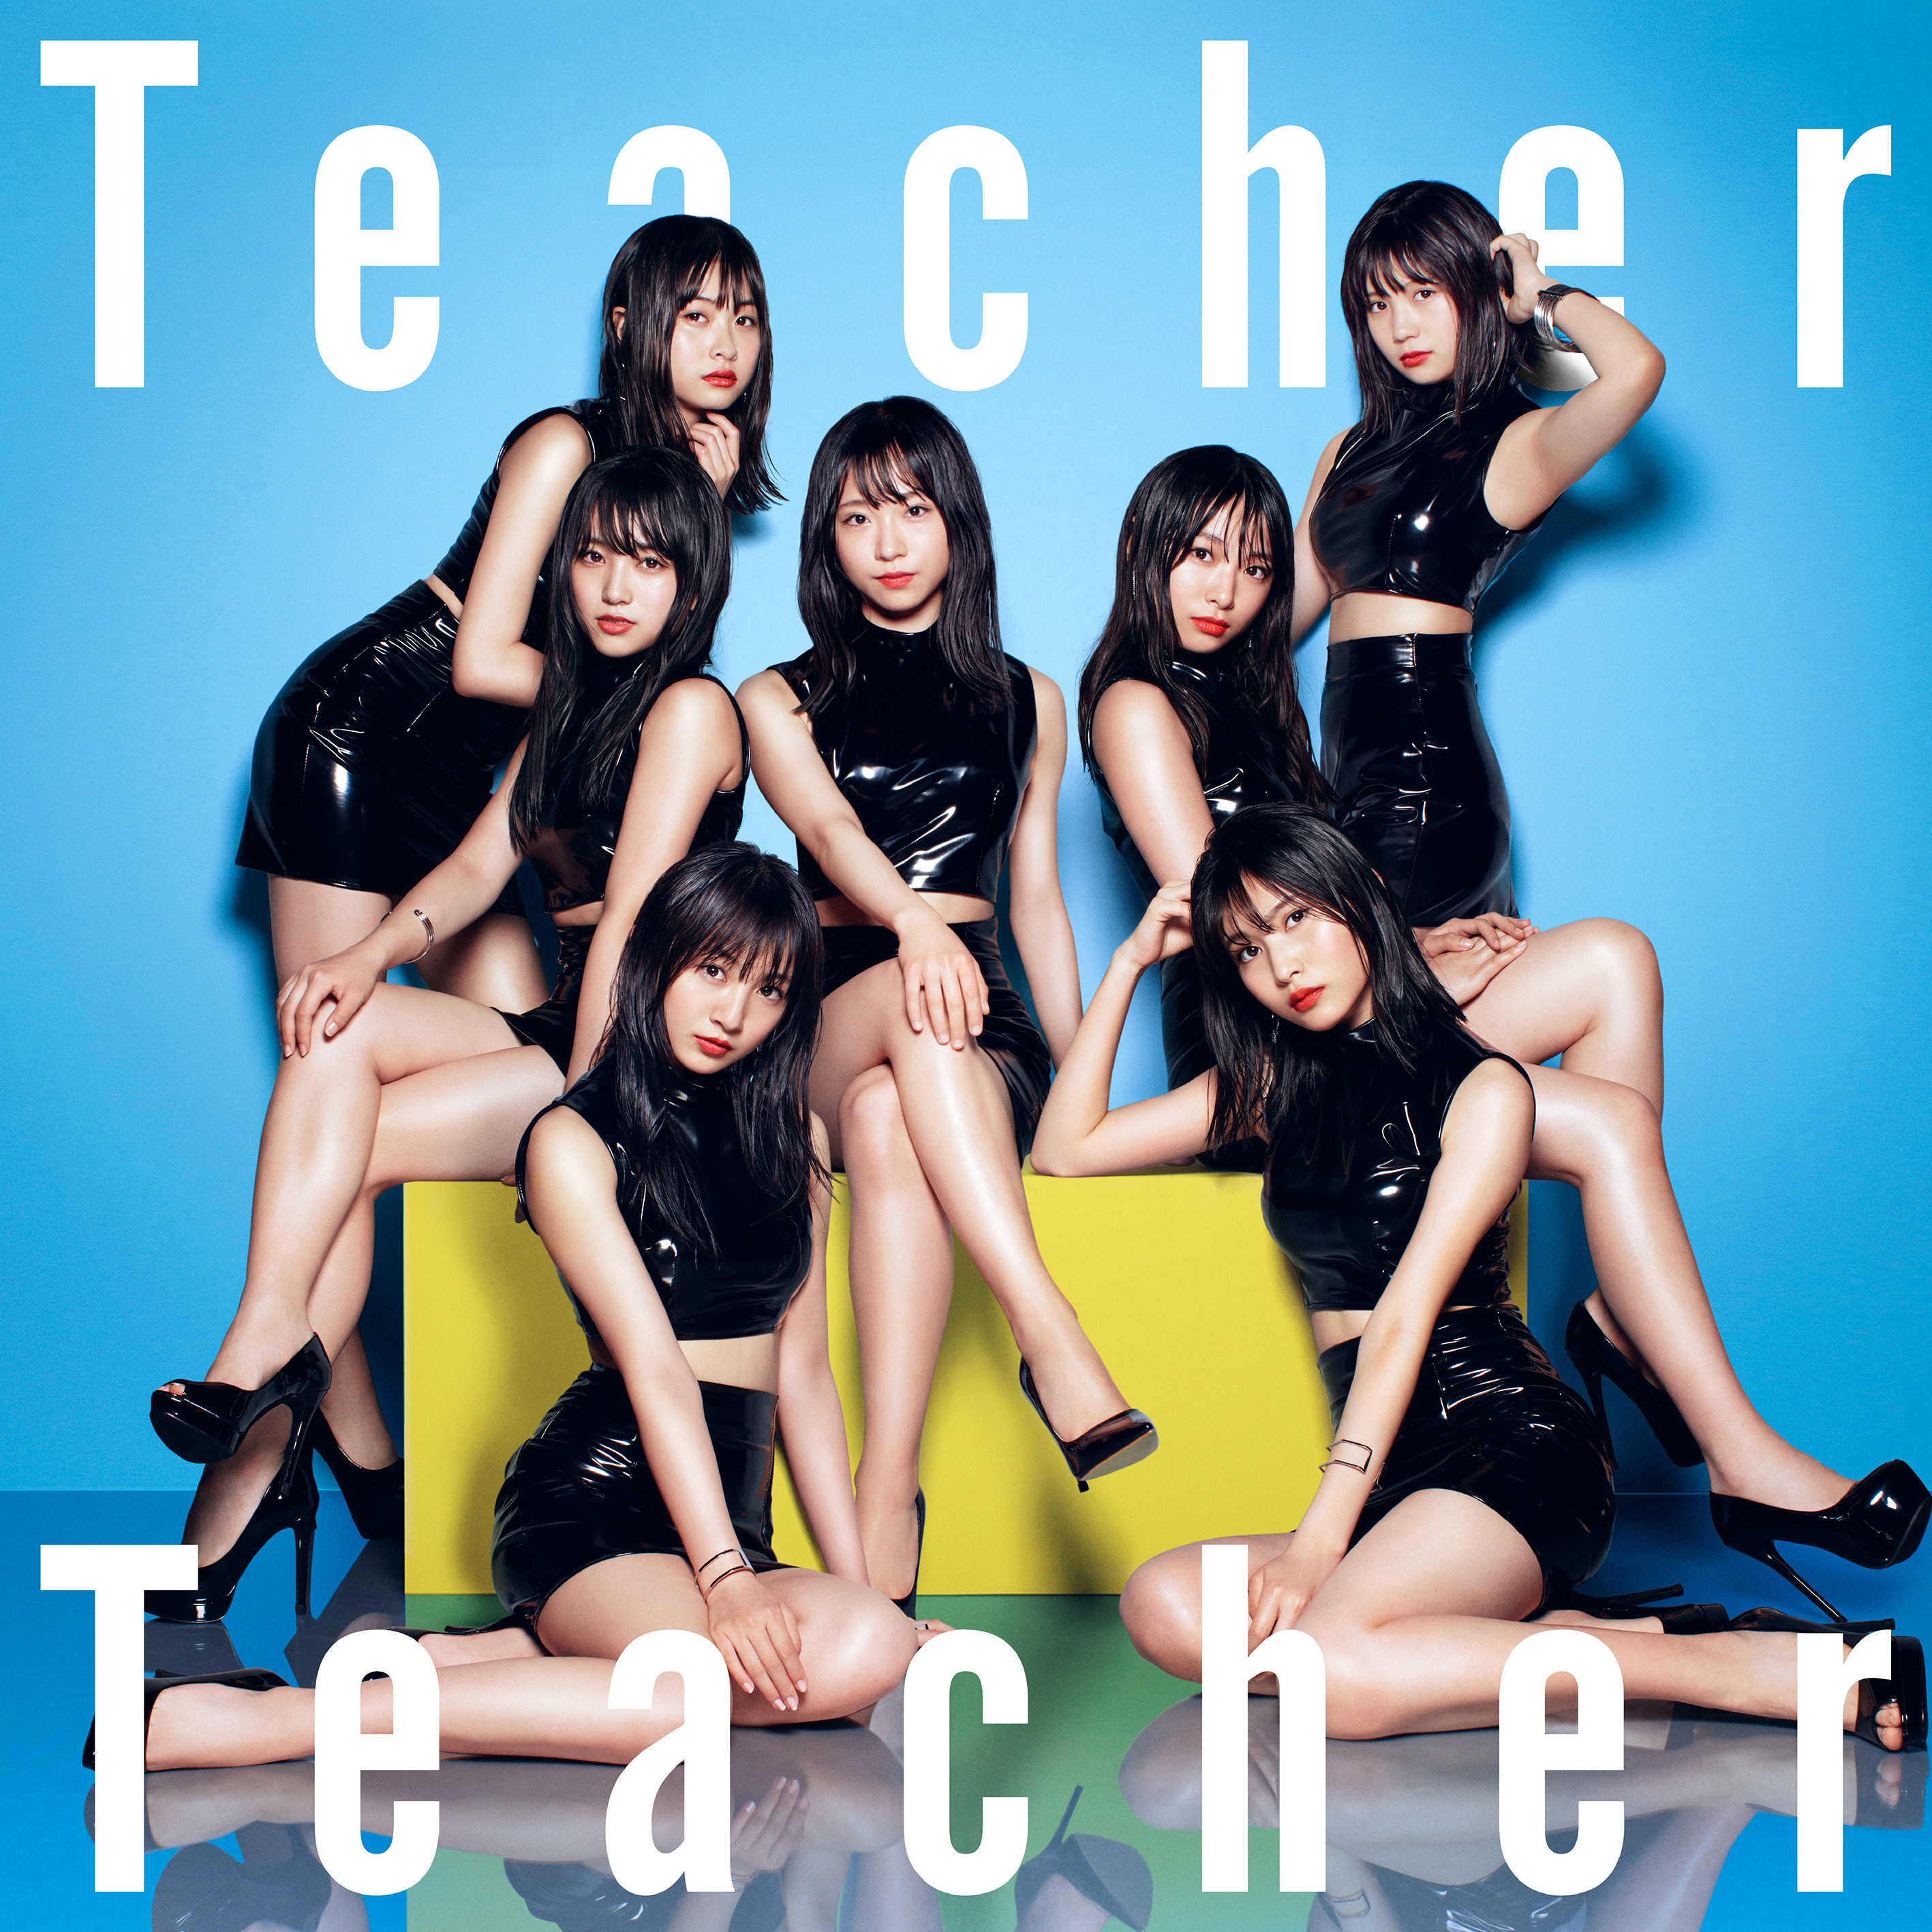 20180610.1257.07 AKB48 - Teacher Teacher (Type D) cover 7.jpg